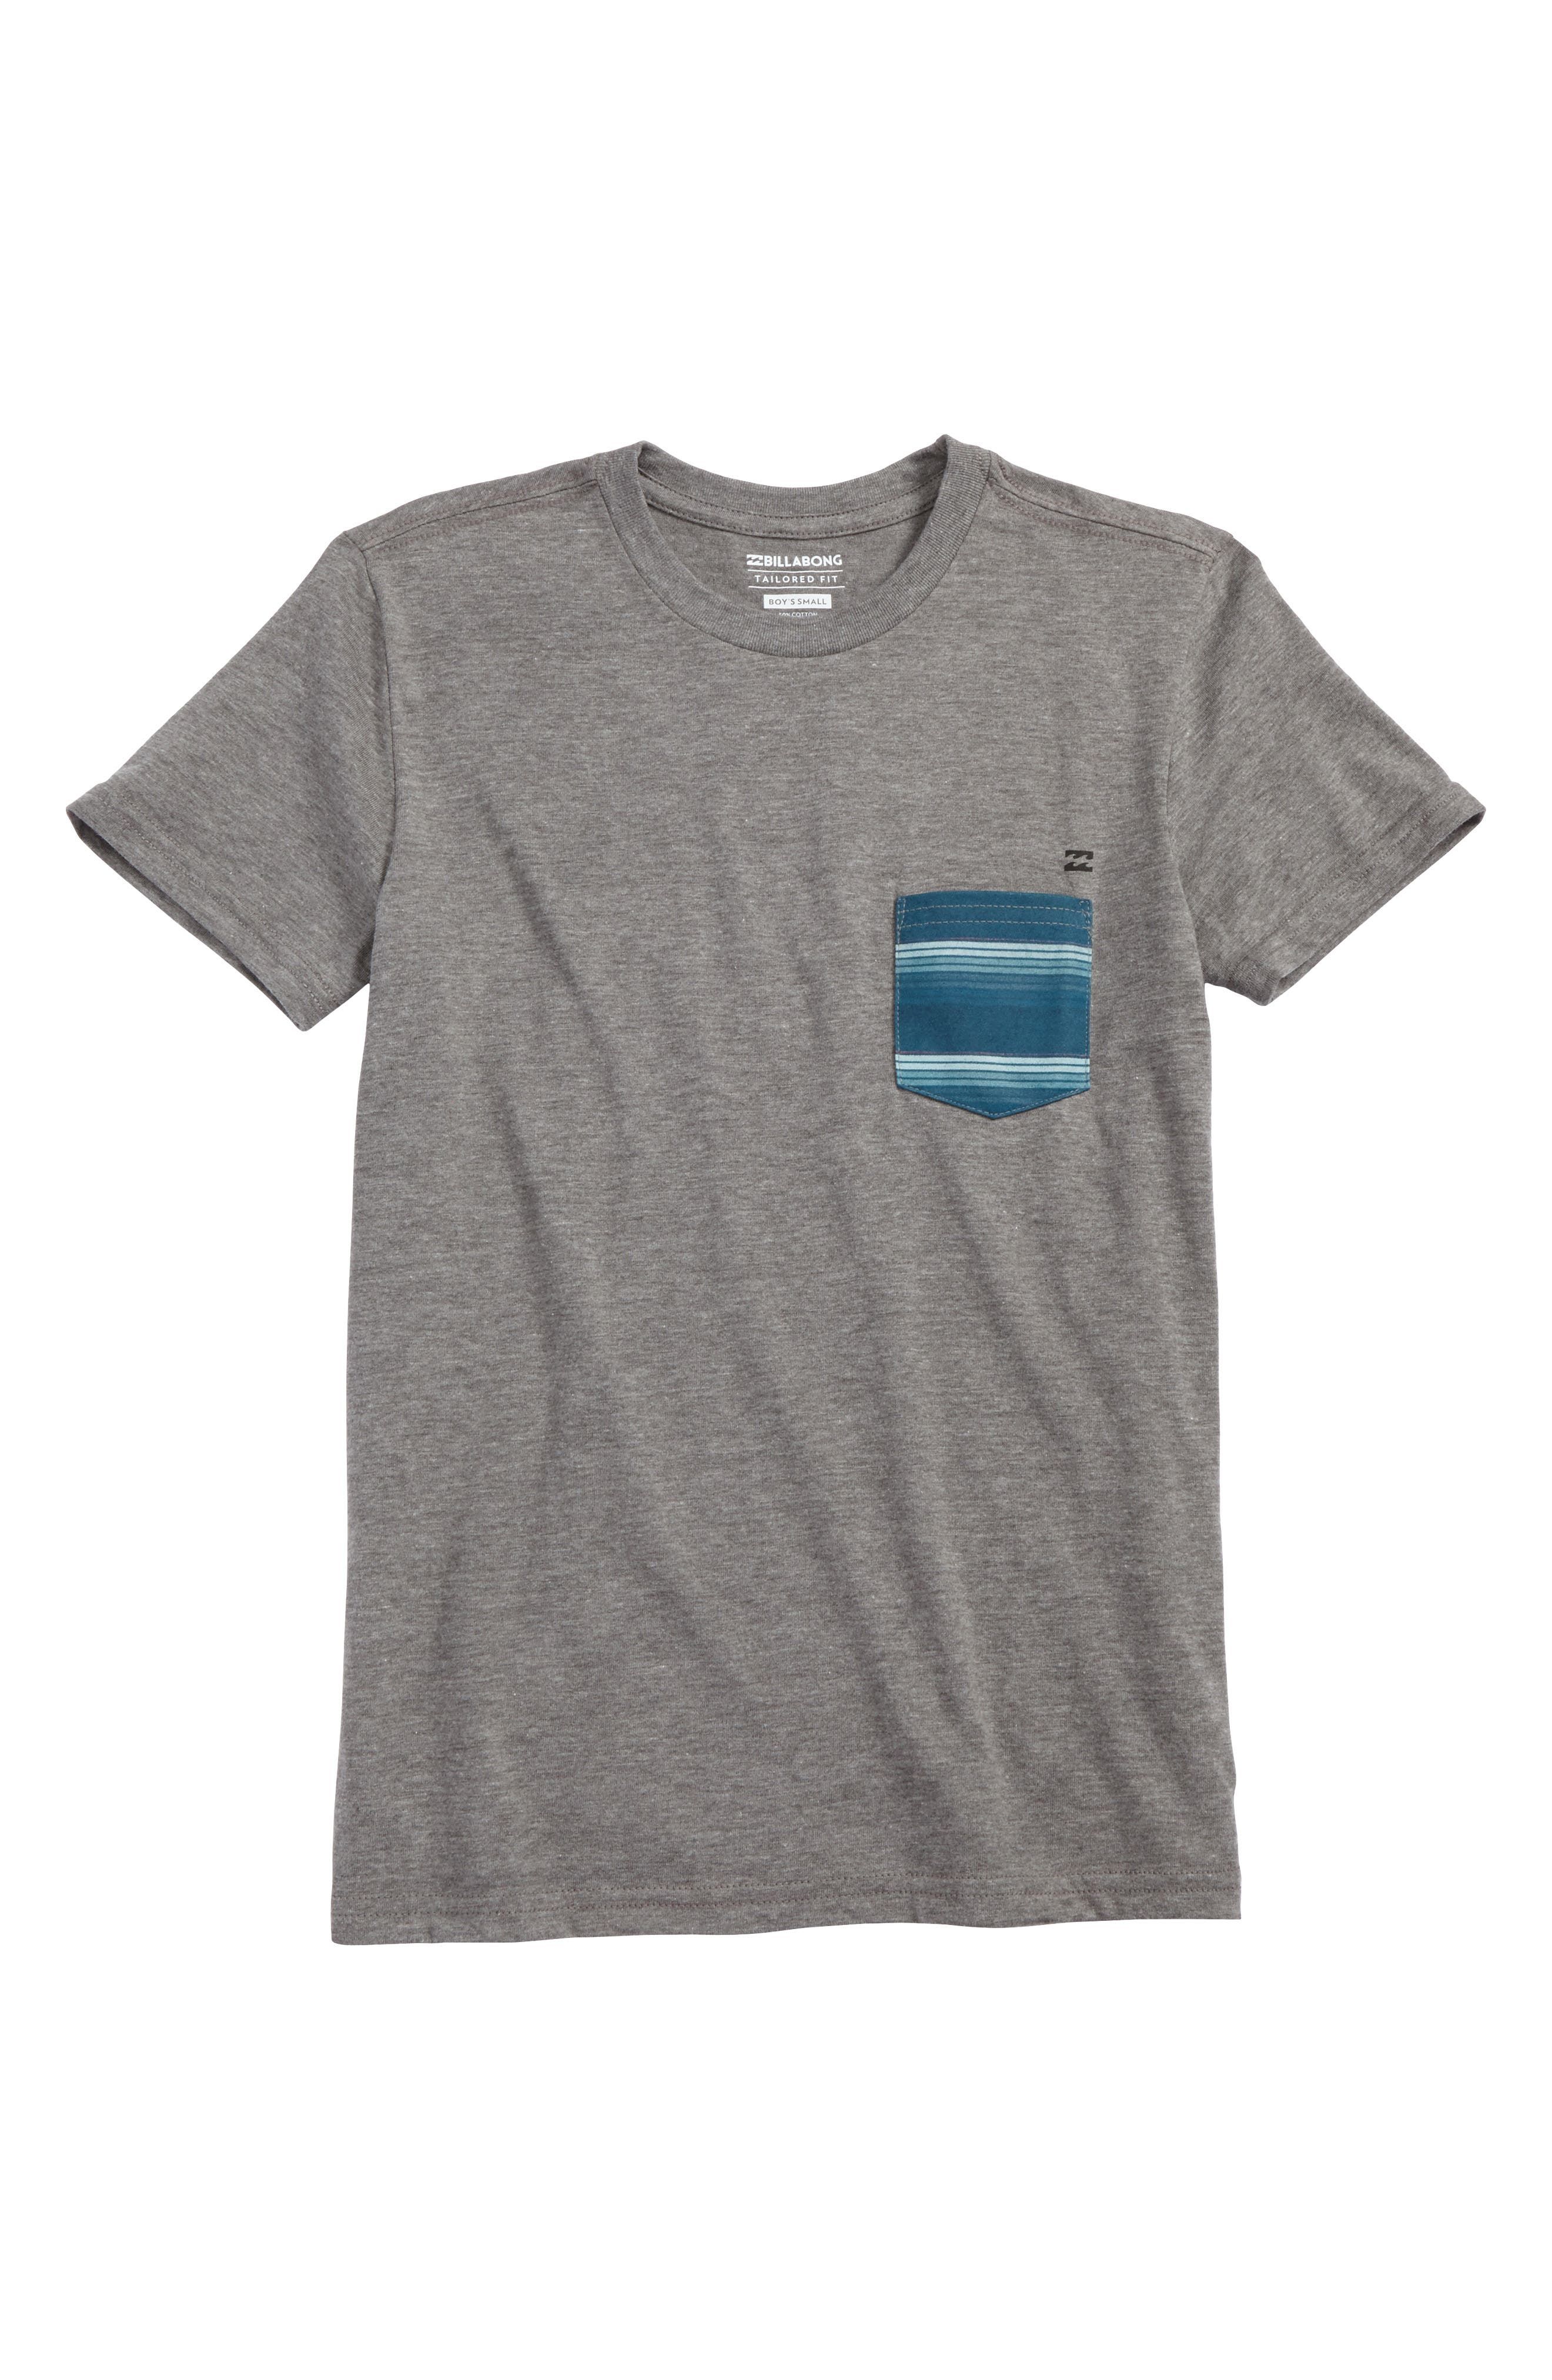 Main Image - Billabong Team Pocket T-Shirt (Big Boys)